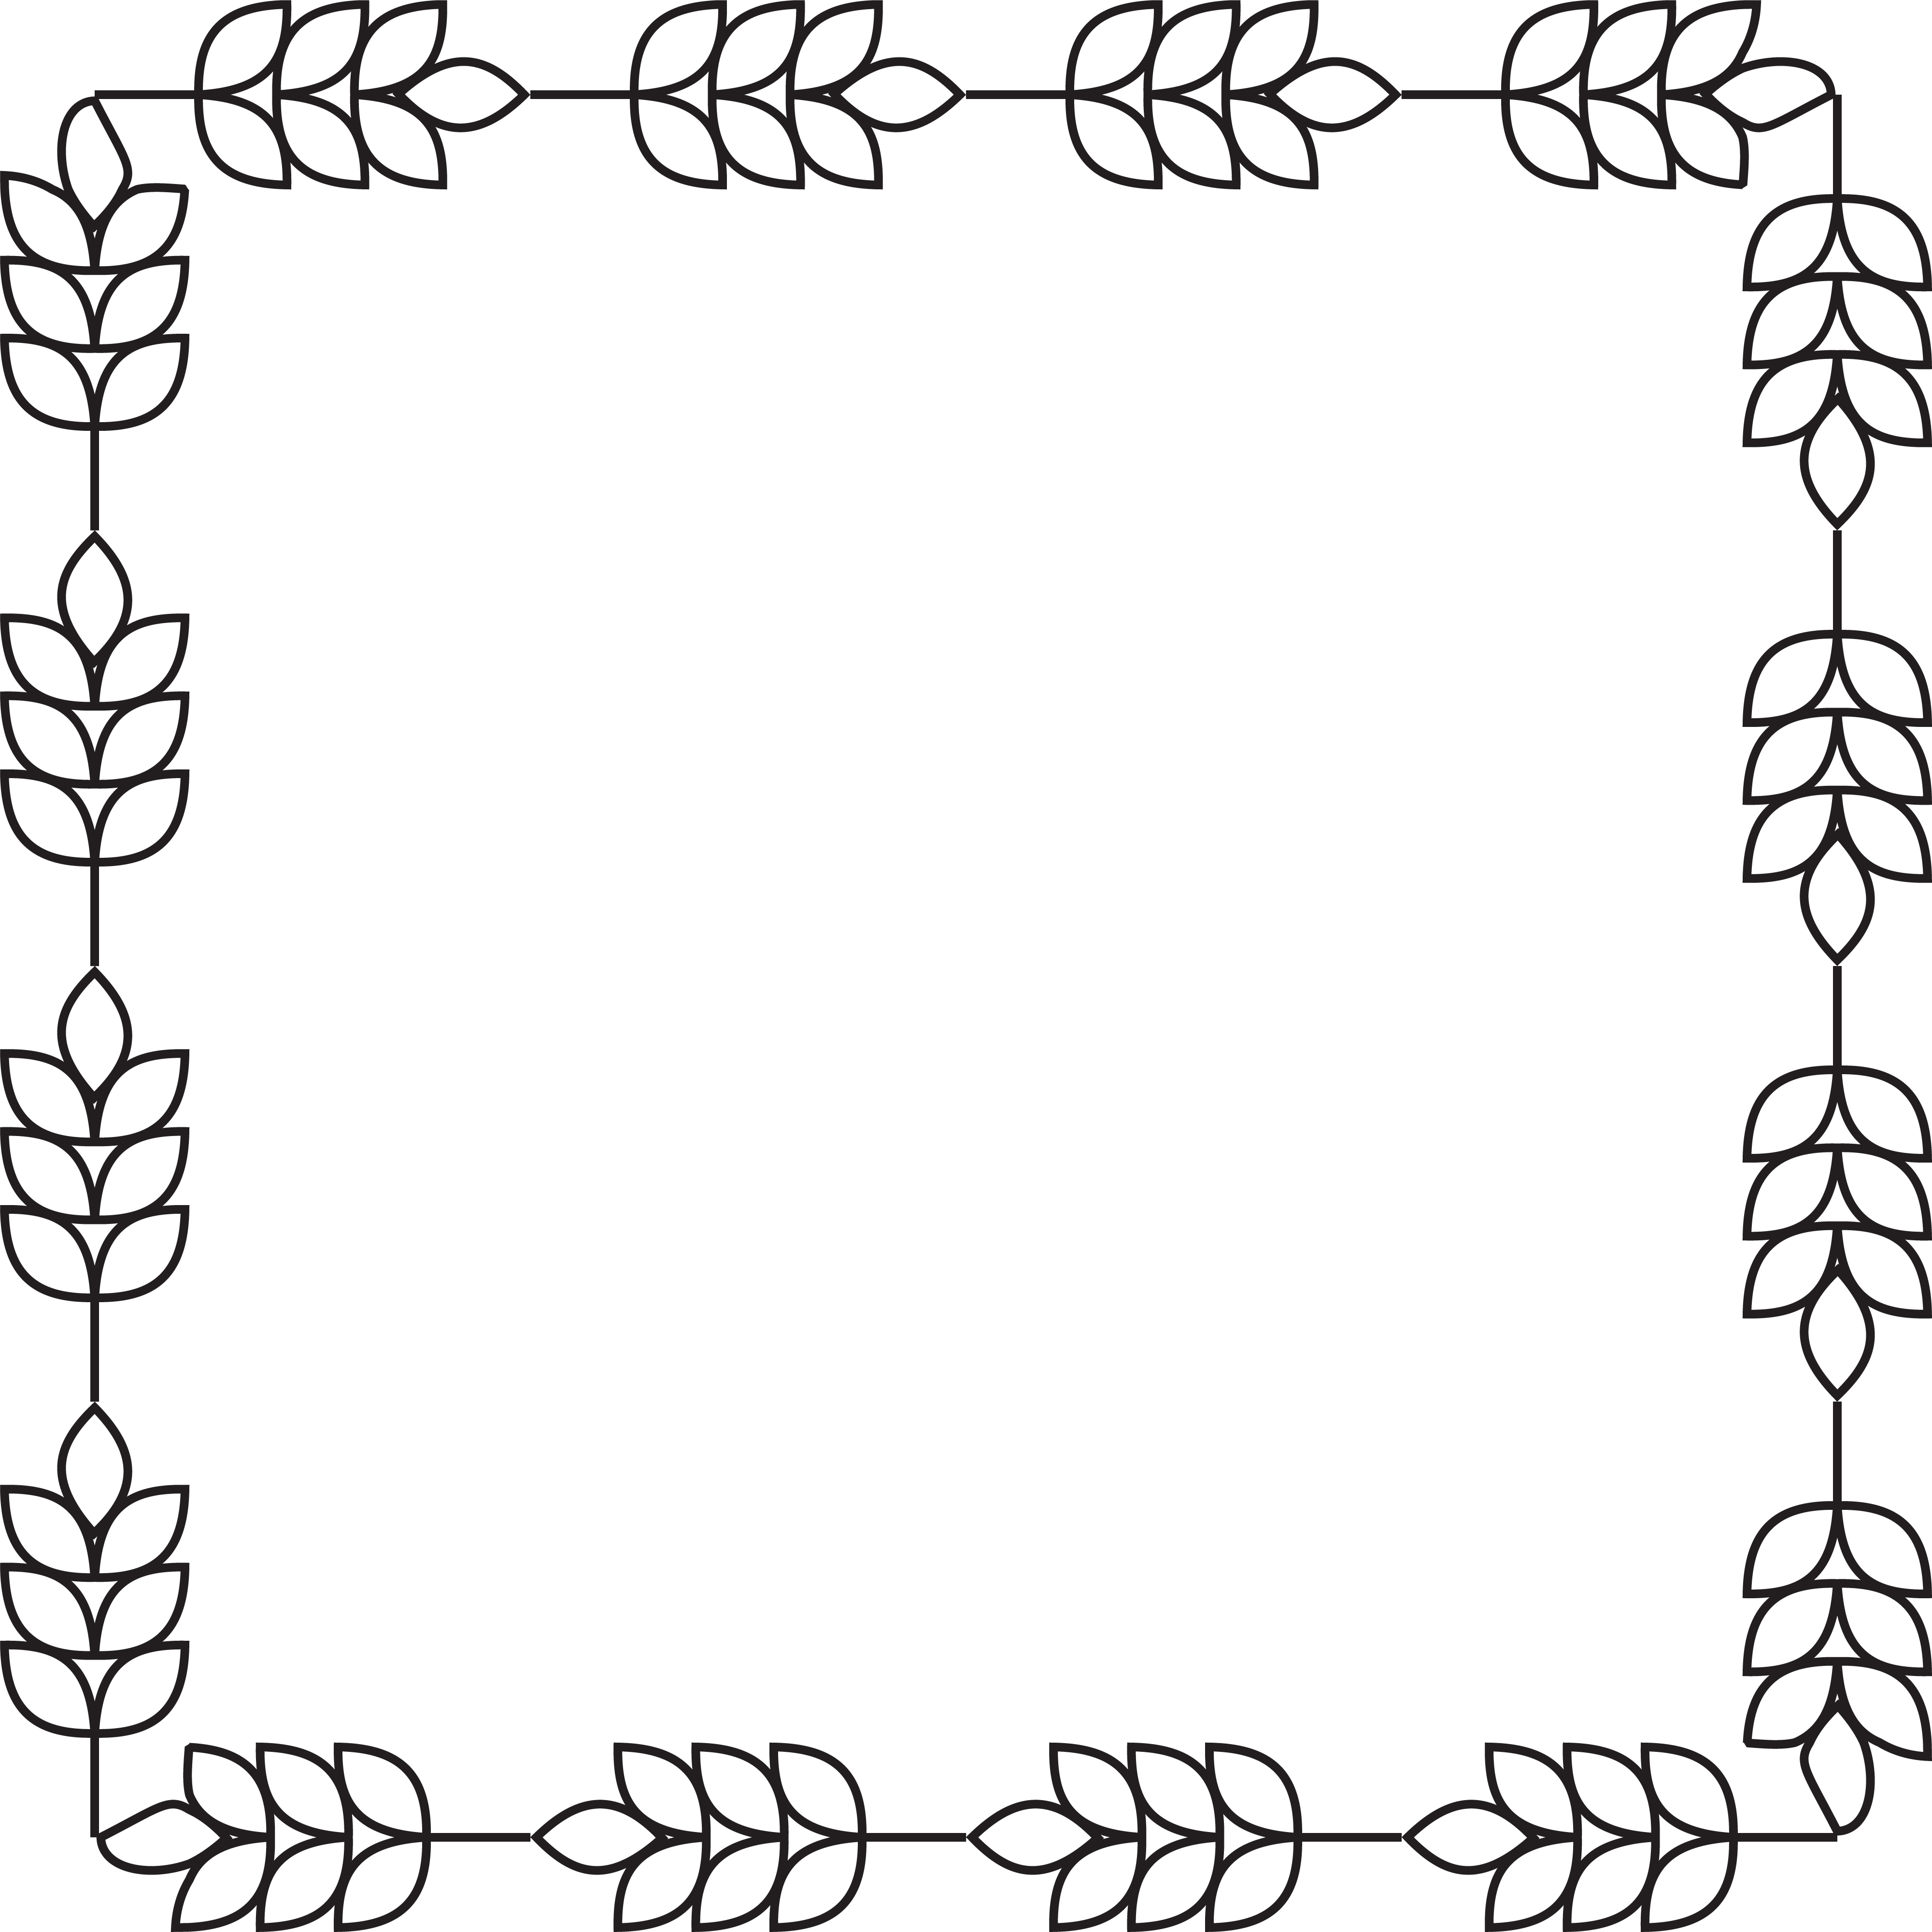 Free Clipart of a square border of barley.